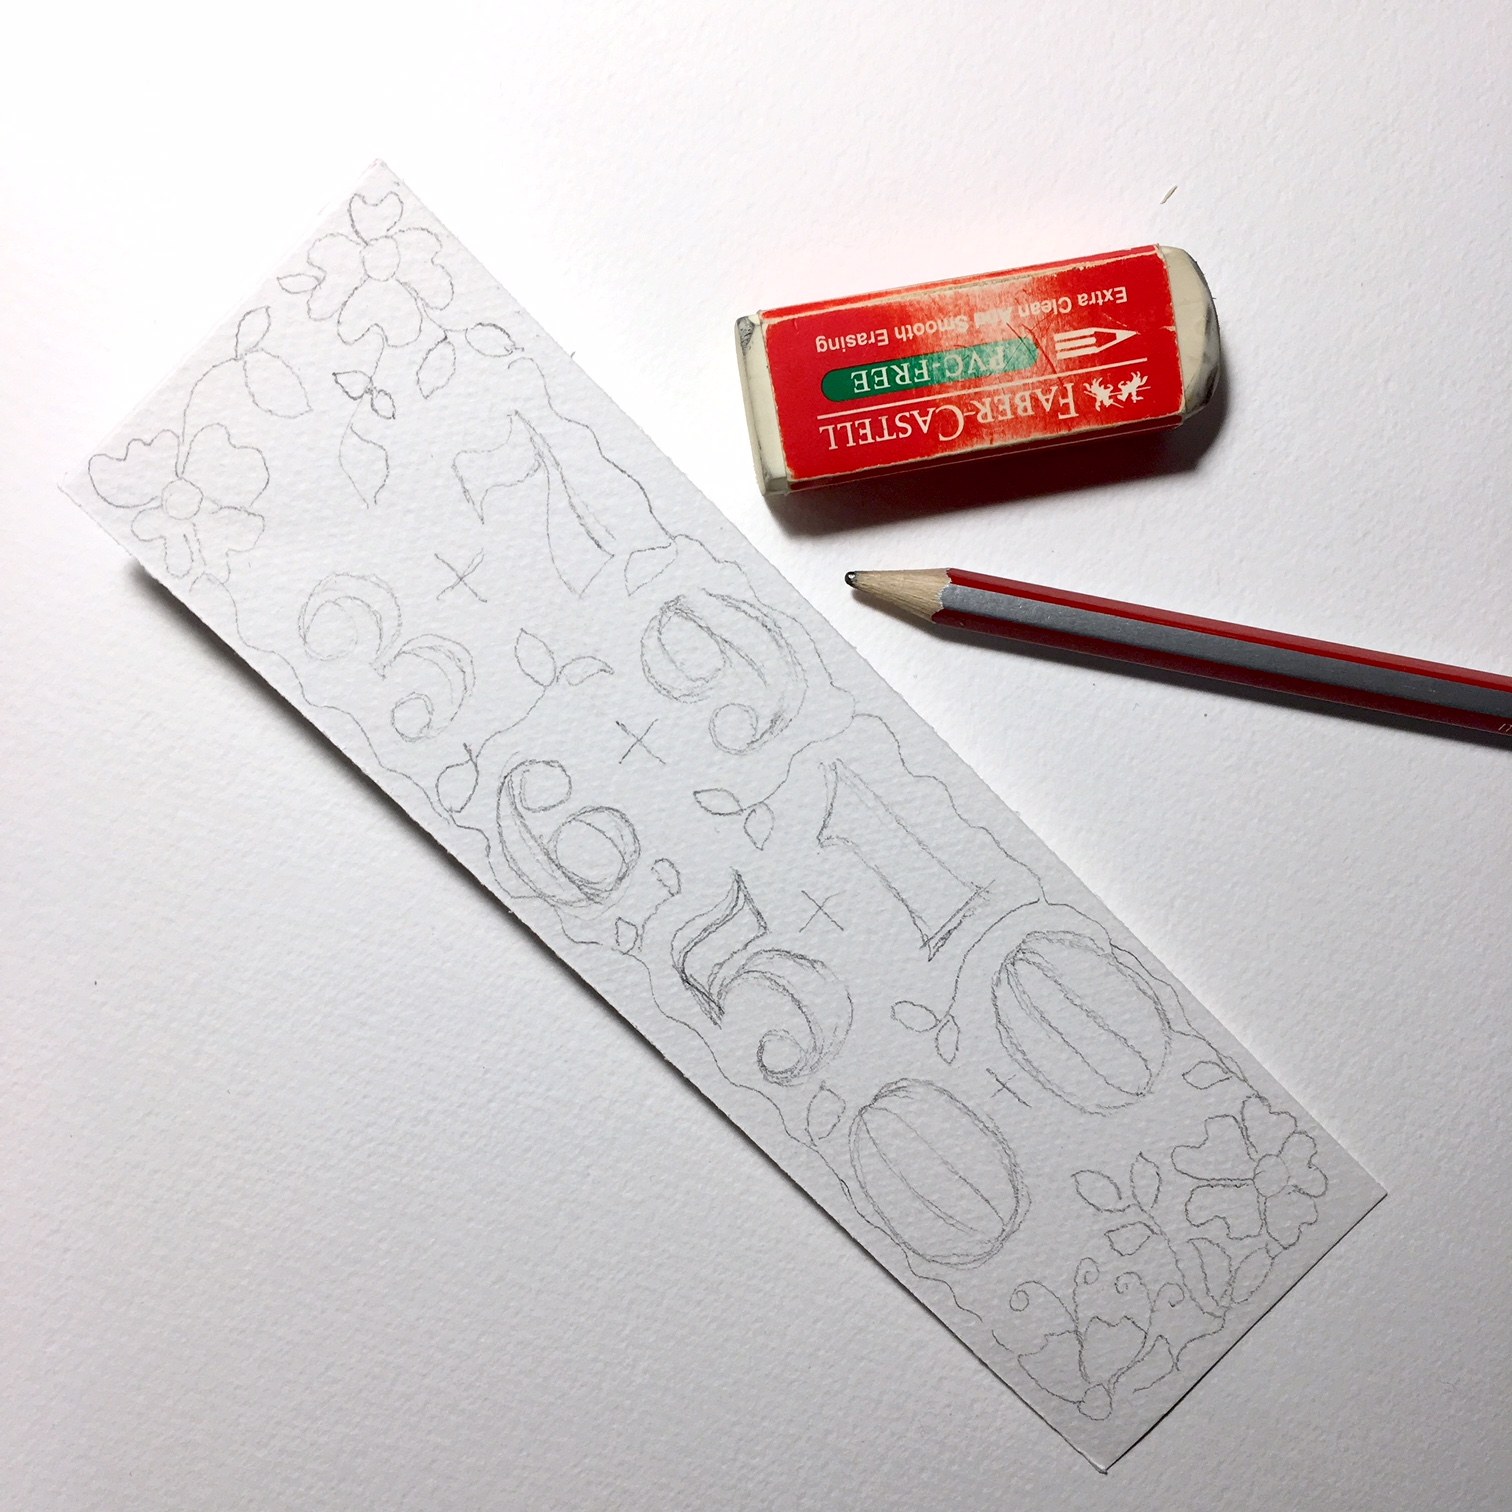 handmade bookmarks - long rectangle from white watercolour paper with numbers drawn, pencil and eraser